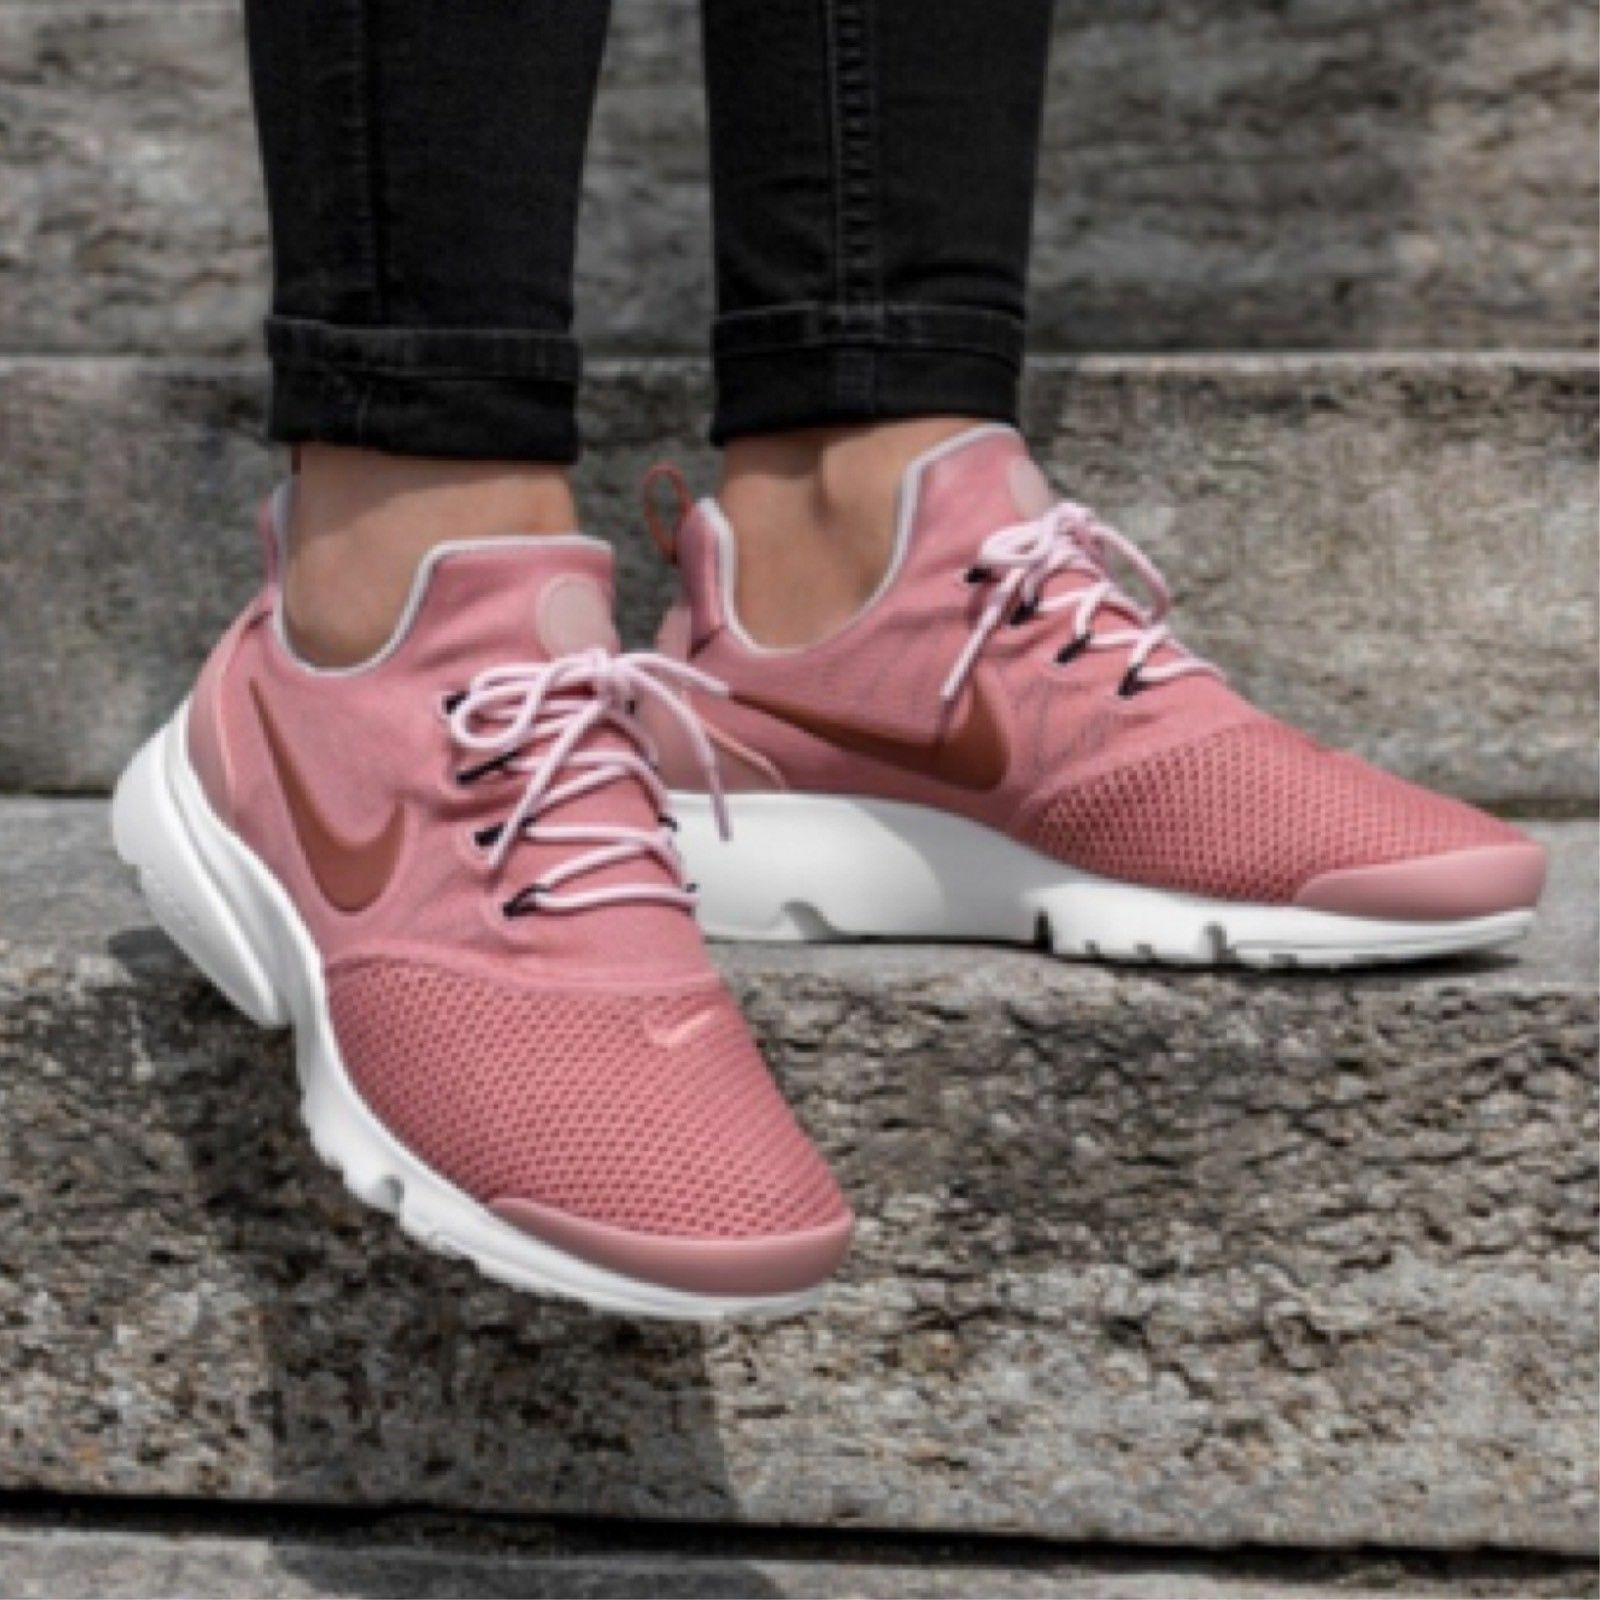 femmes NIKE PRESTO FLY SIZE 3.5 EUR 36.5 (910569 601) DUSTY PEACH rose